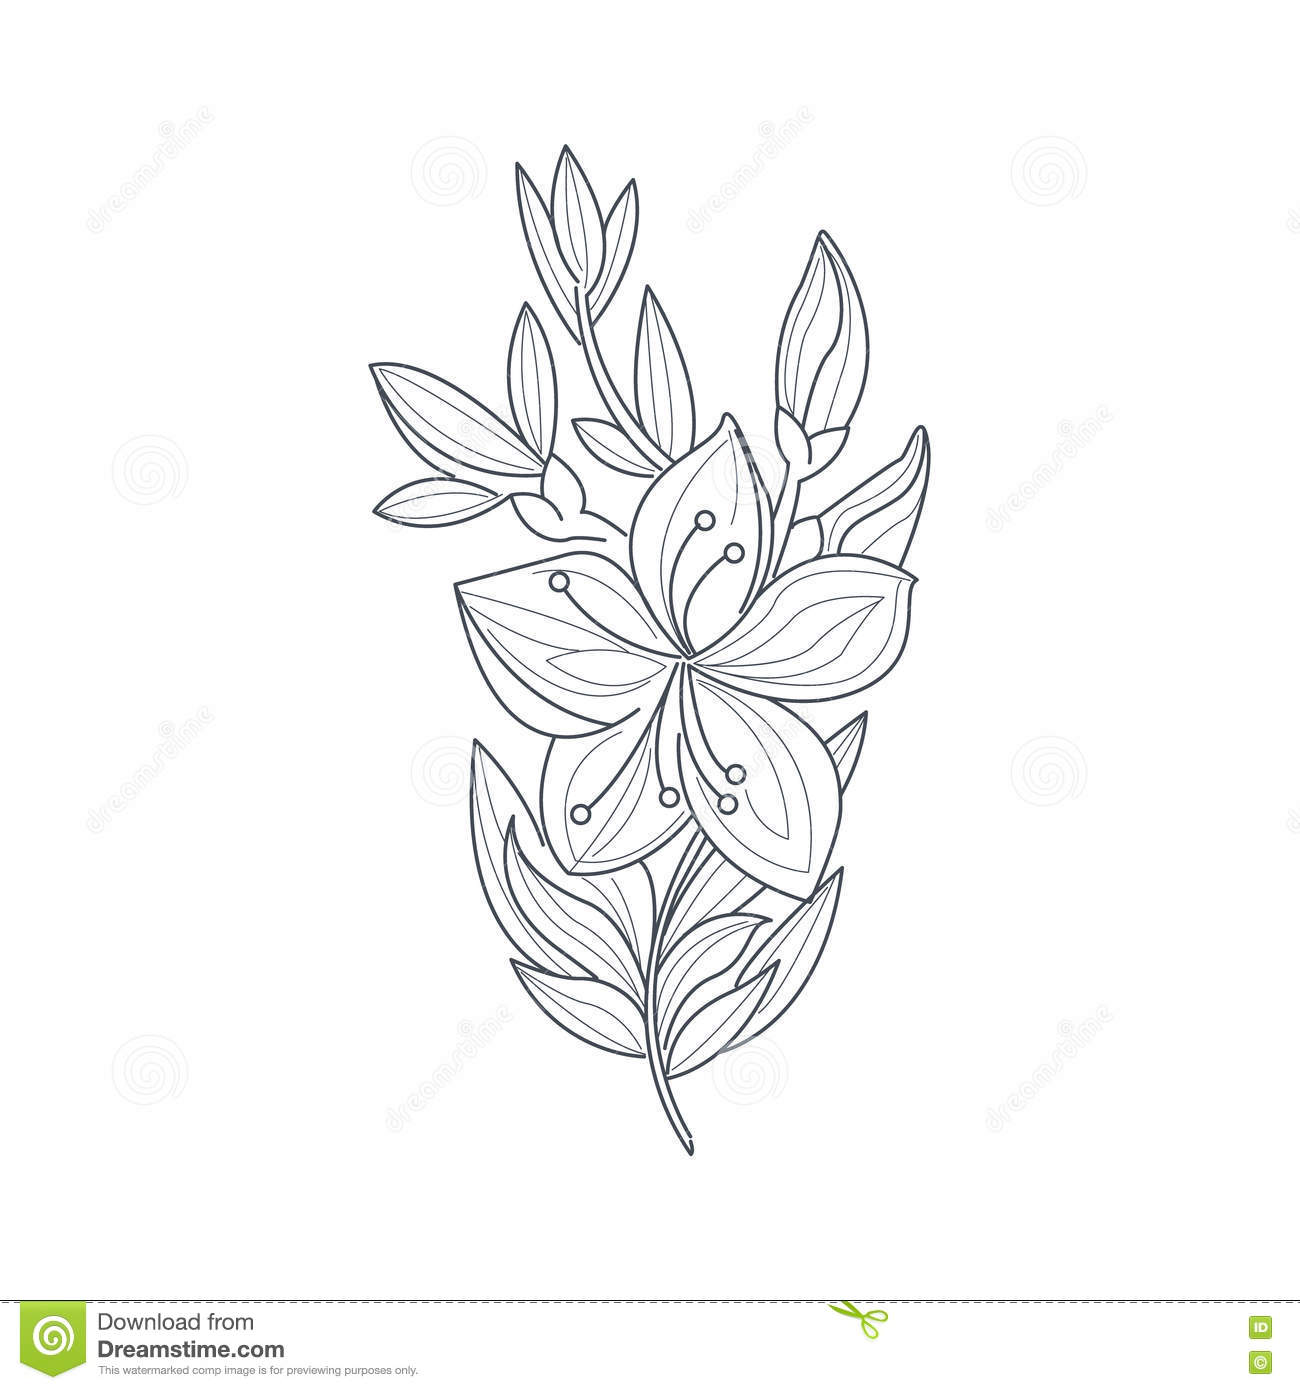 Jasmine Flower Monochrome Drawing For Coloring Book Stock